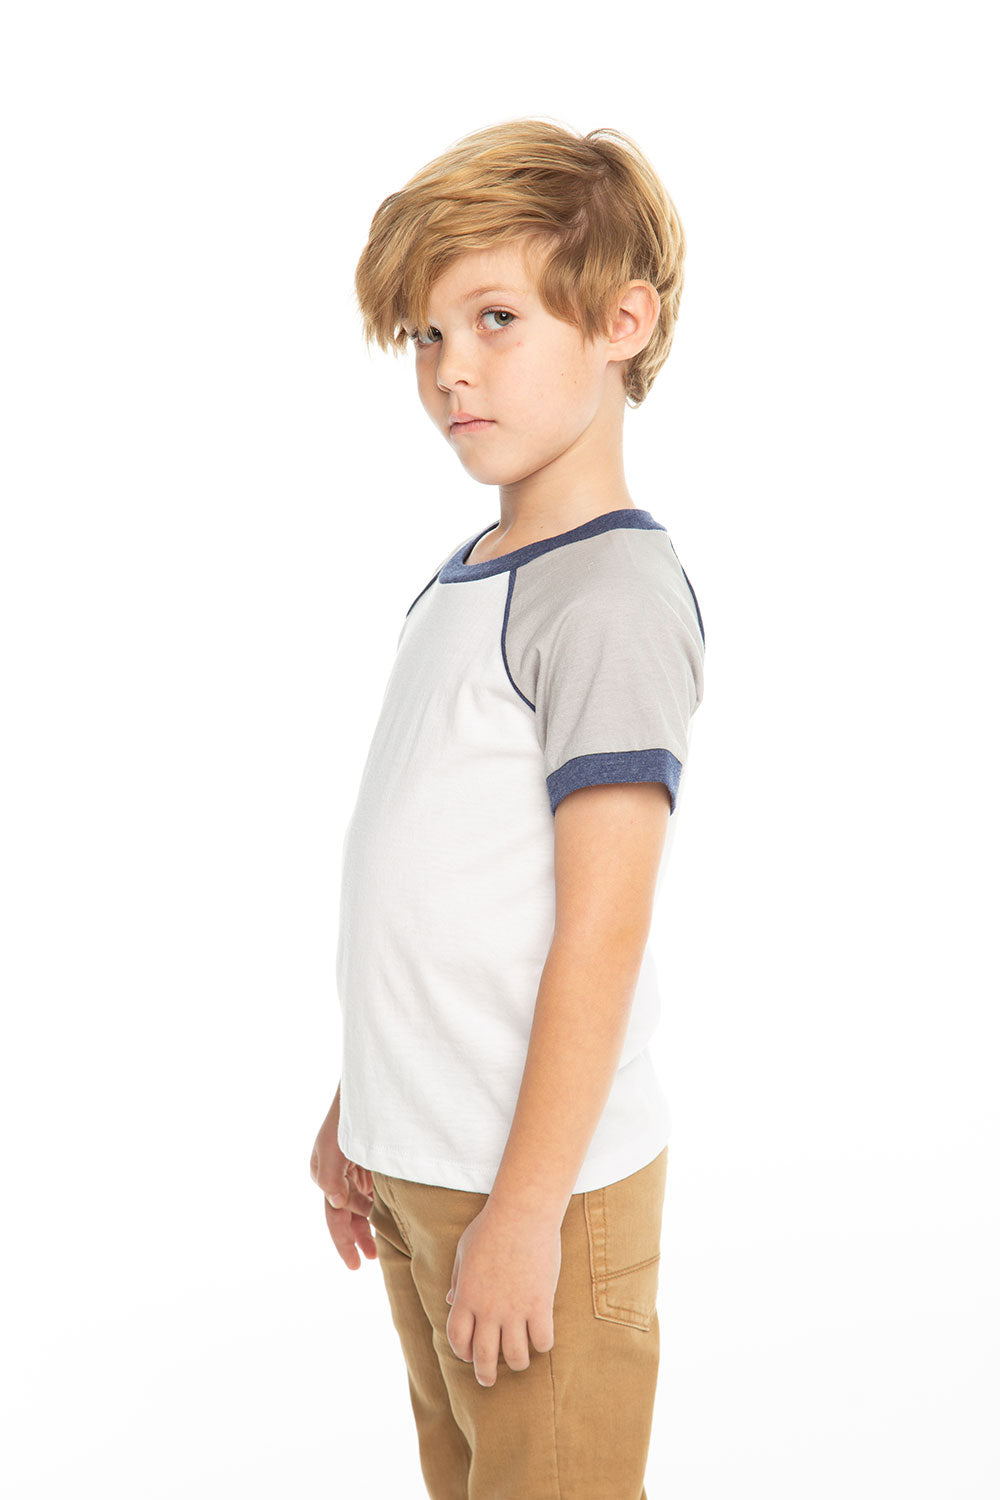 Boys Blocked Jersey Classic S/S Raglan Tee, BOYS, chaserbrand.com,chaser clothing,chaser apparel,chaser los angeles